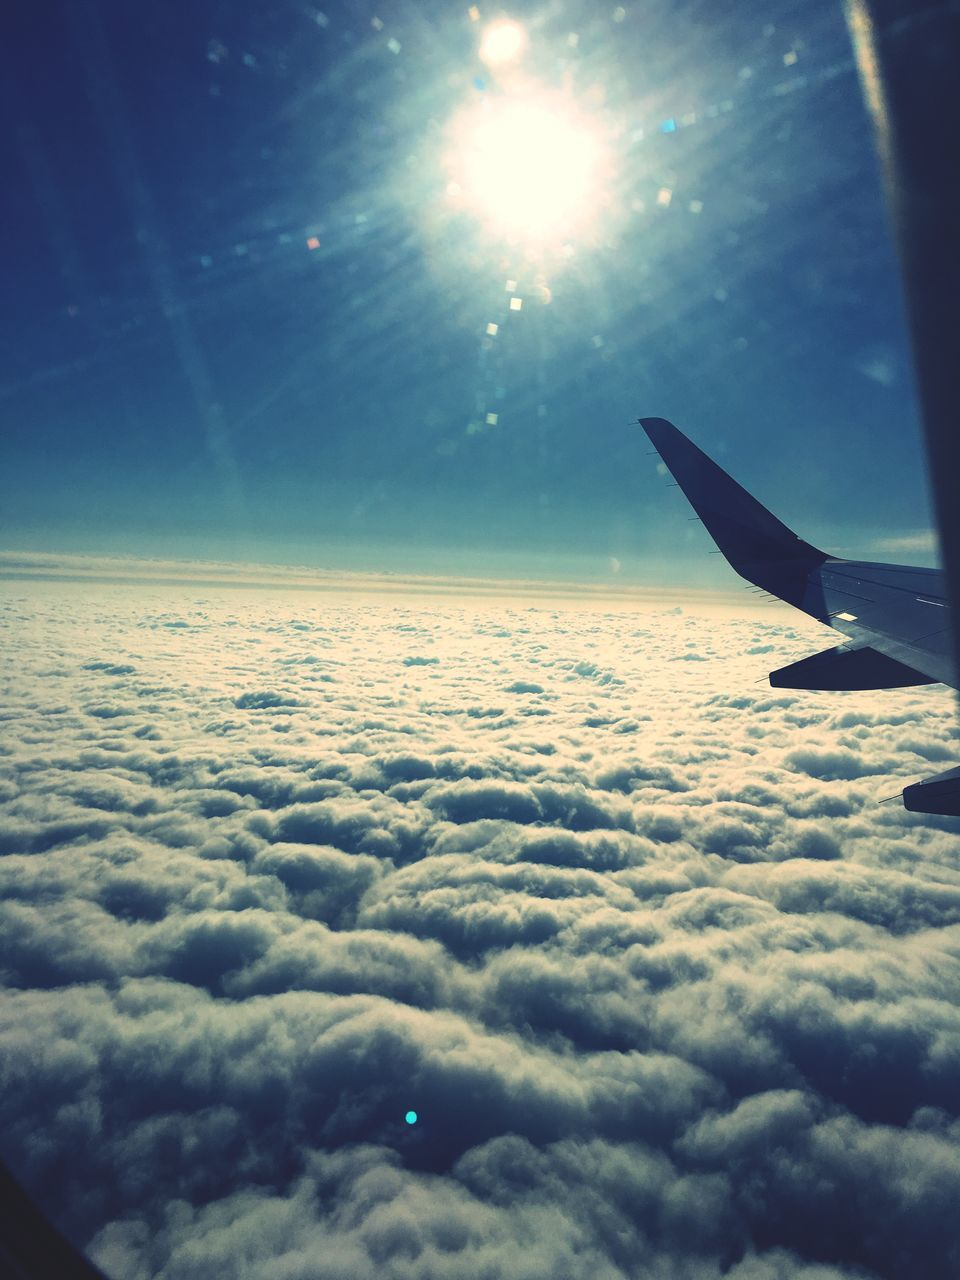 sky, airplane, nature, sun, cloudscape, beauty in nature, transportation, cloud - sky, airplane wing, flying, tranquility, tranquil scene, scenics, aerial view, no people, journey, blue, mid-air, air vehicle, aircraft wing, outdoors, the natural world, close-up